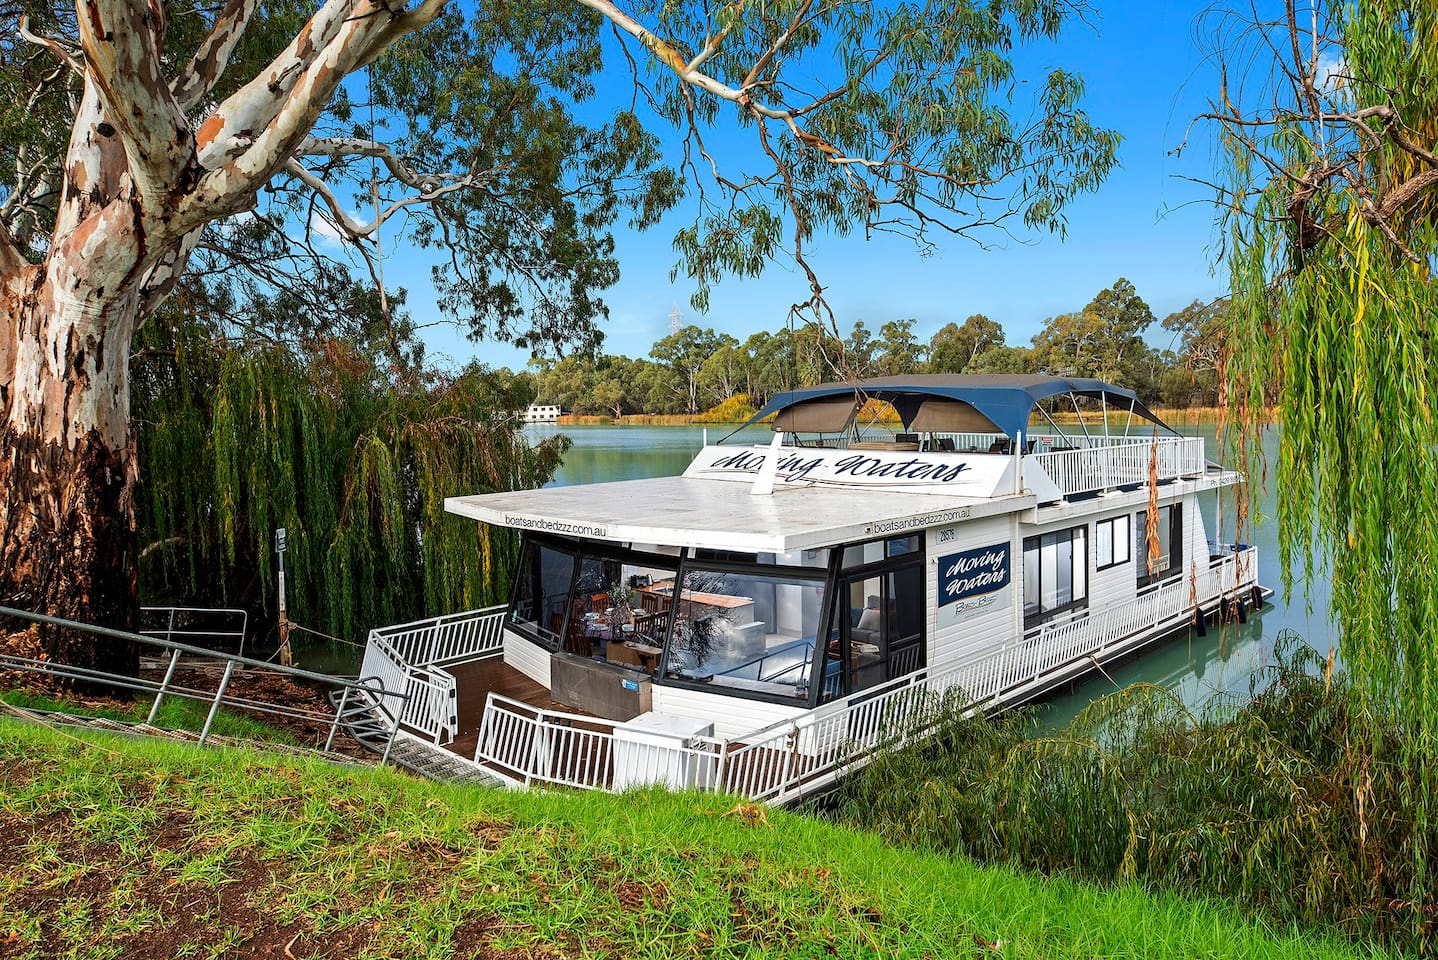 Moving Waters is situated in a peaceful location on the Murray River and only a 5 minute riverfront walk from the Renmark Township